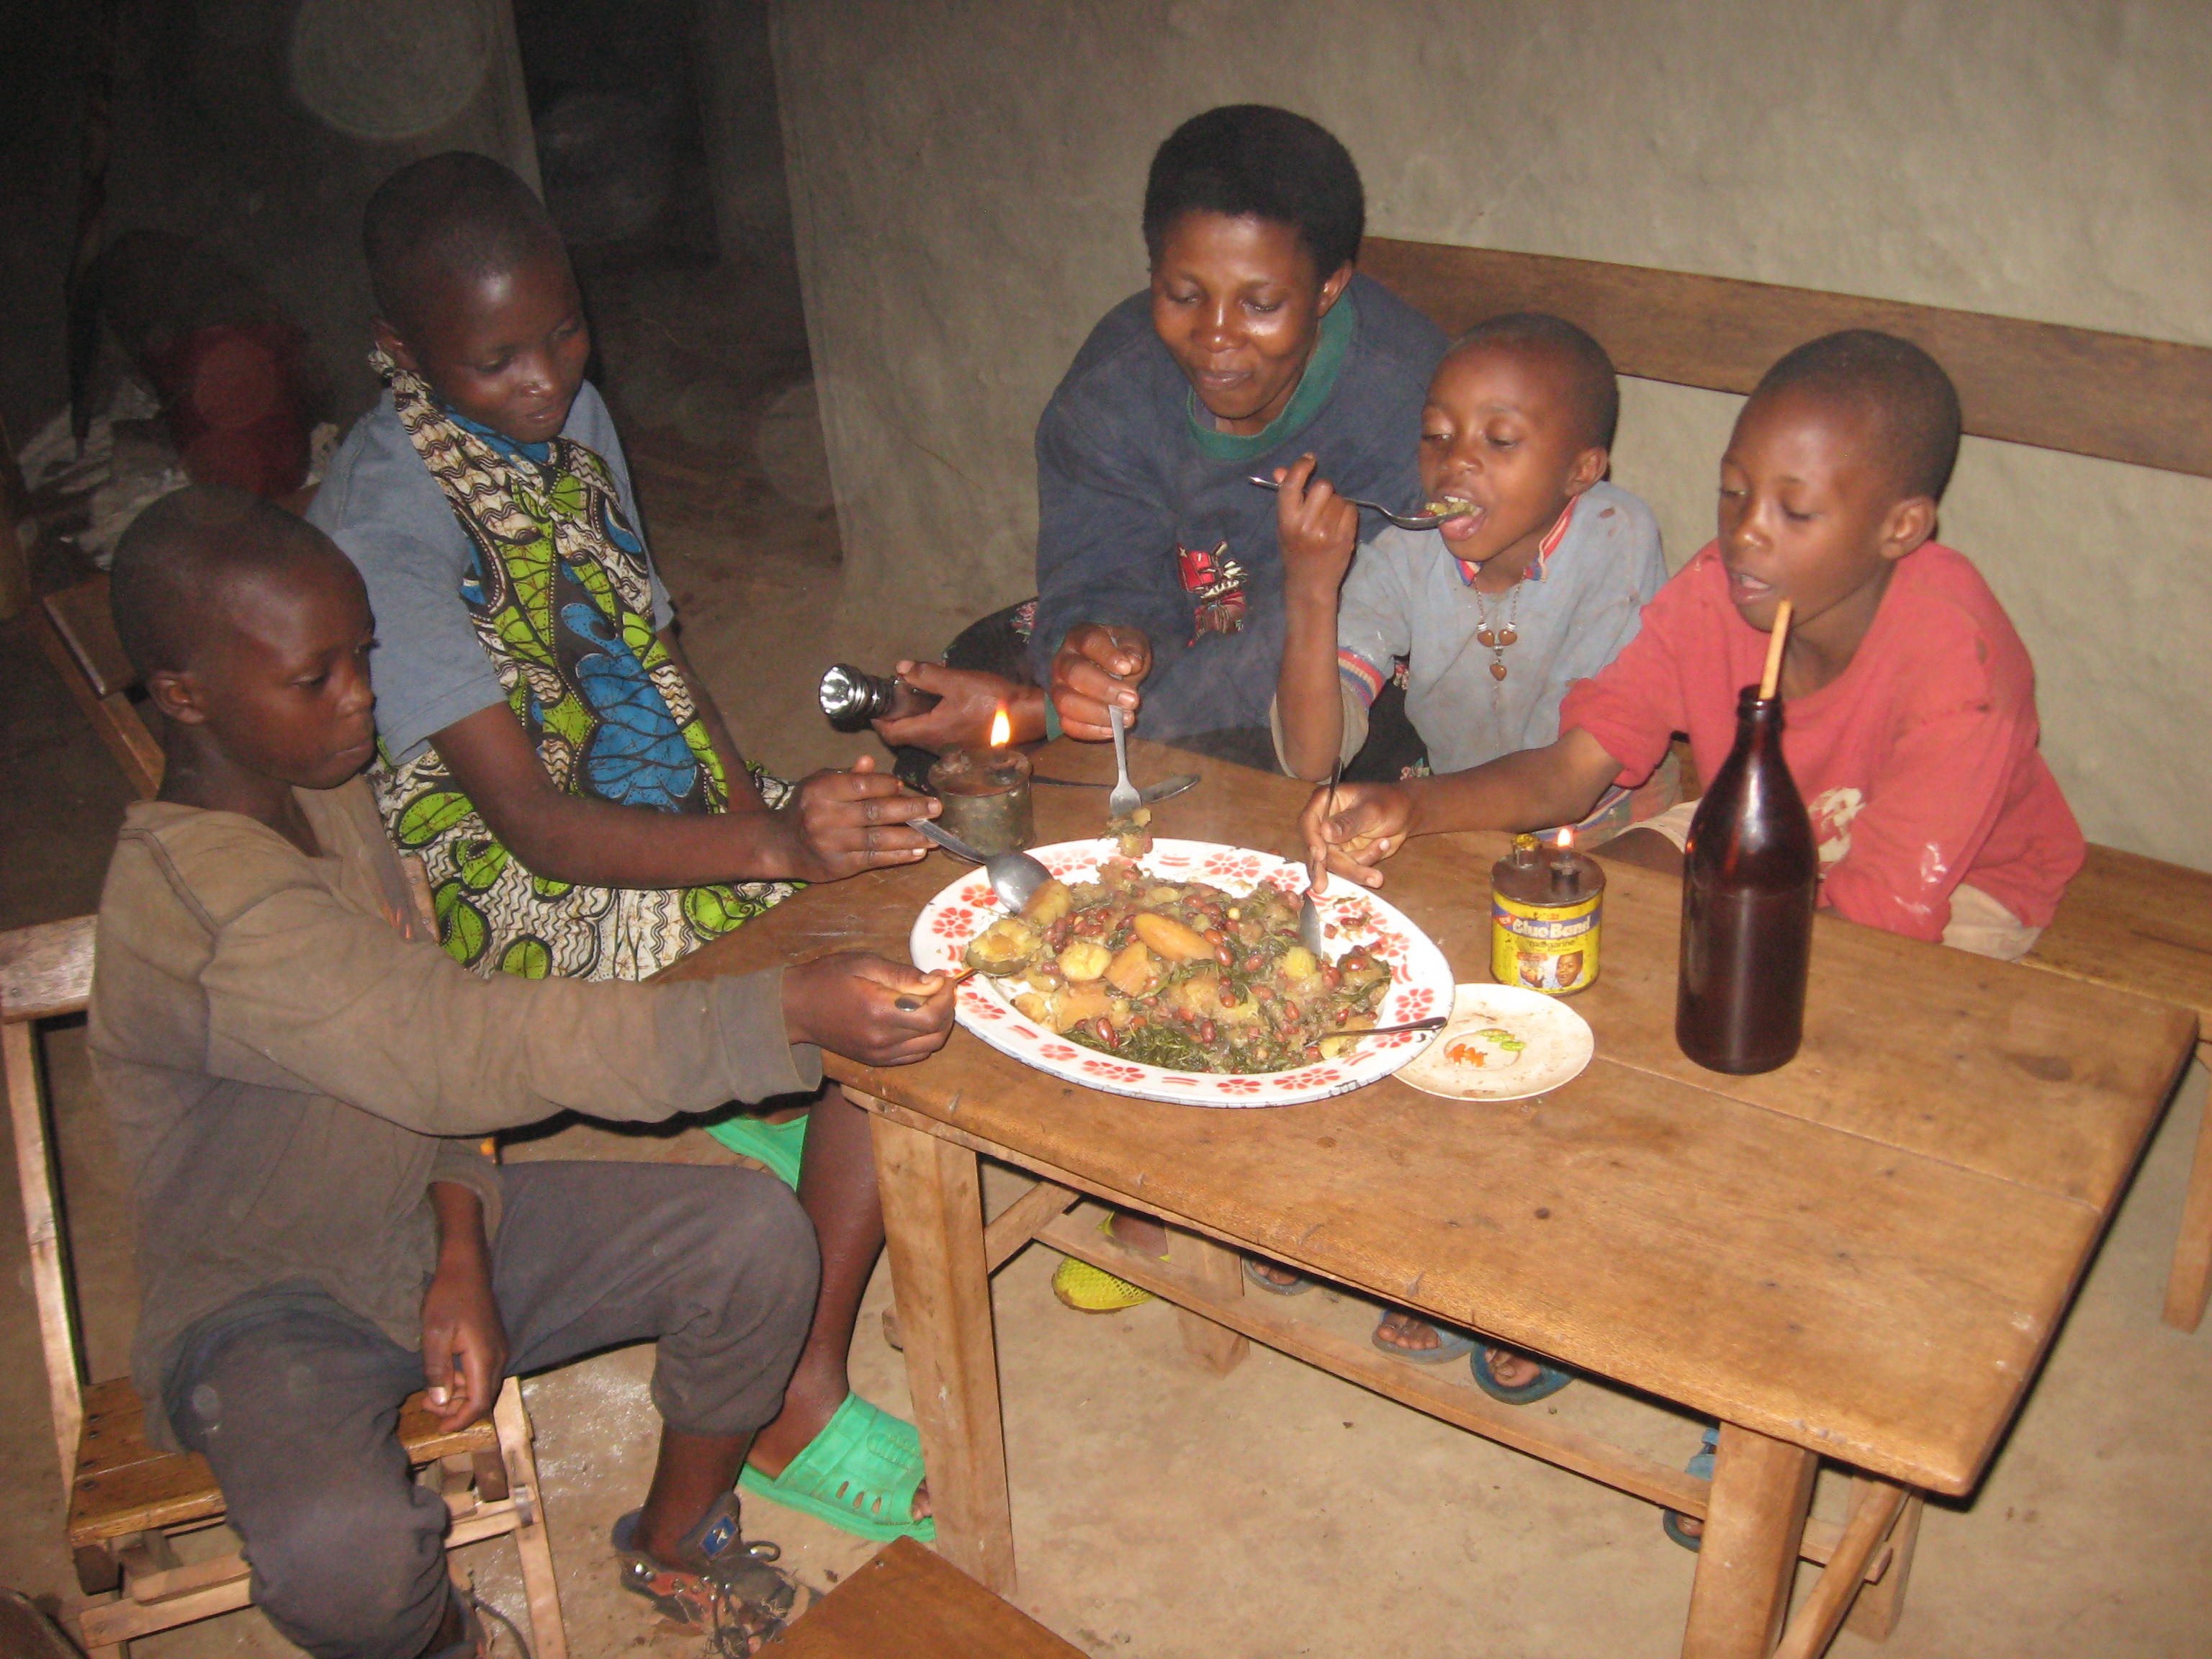 family supper essay In fact, the entire family is addicted to these two serials and has been following up the story from the start we take our supper at 830 pm, while we watch the.